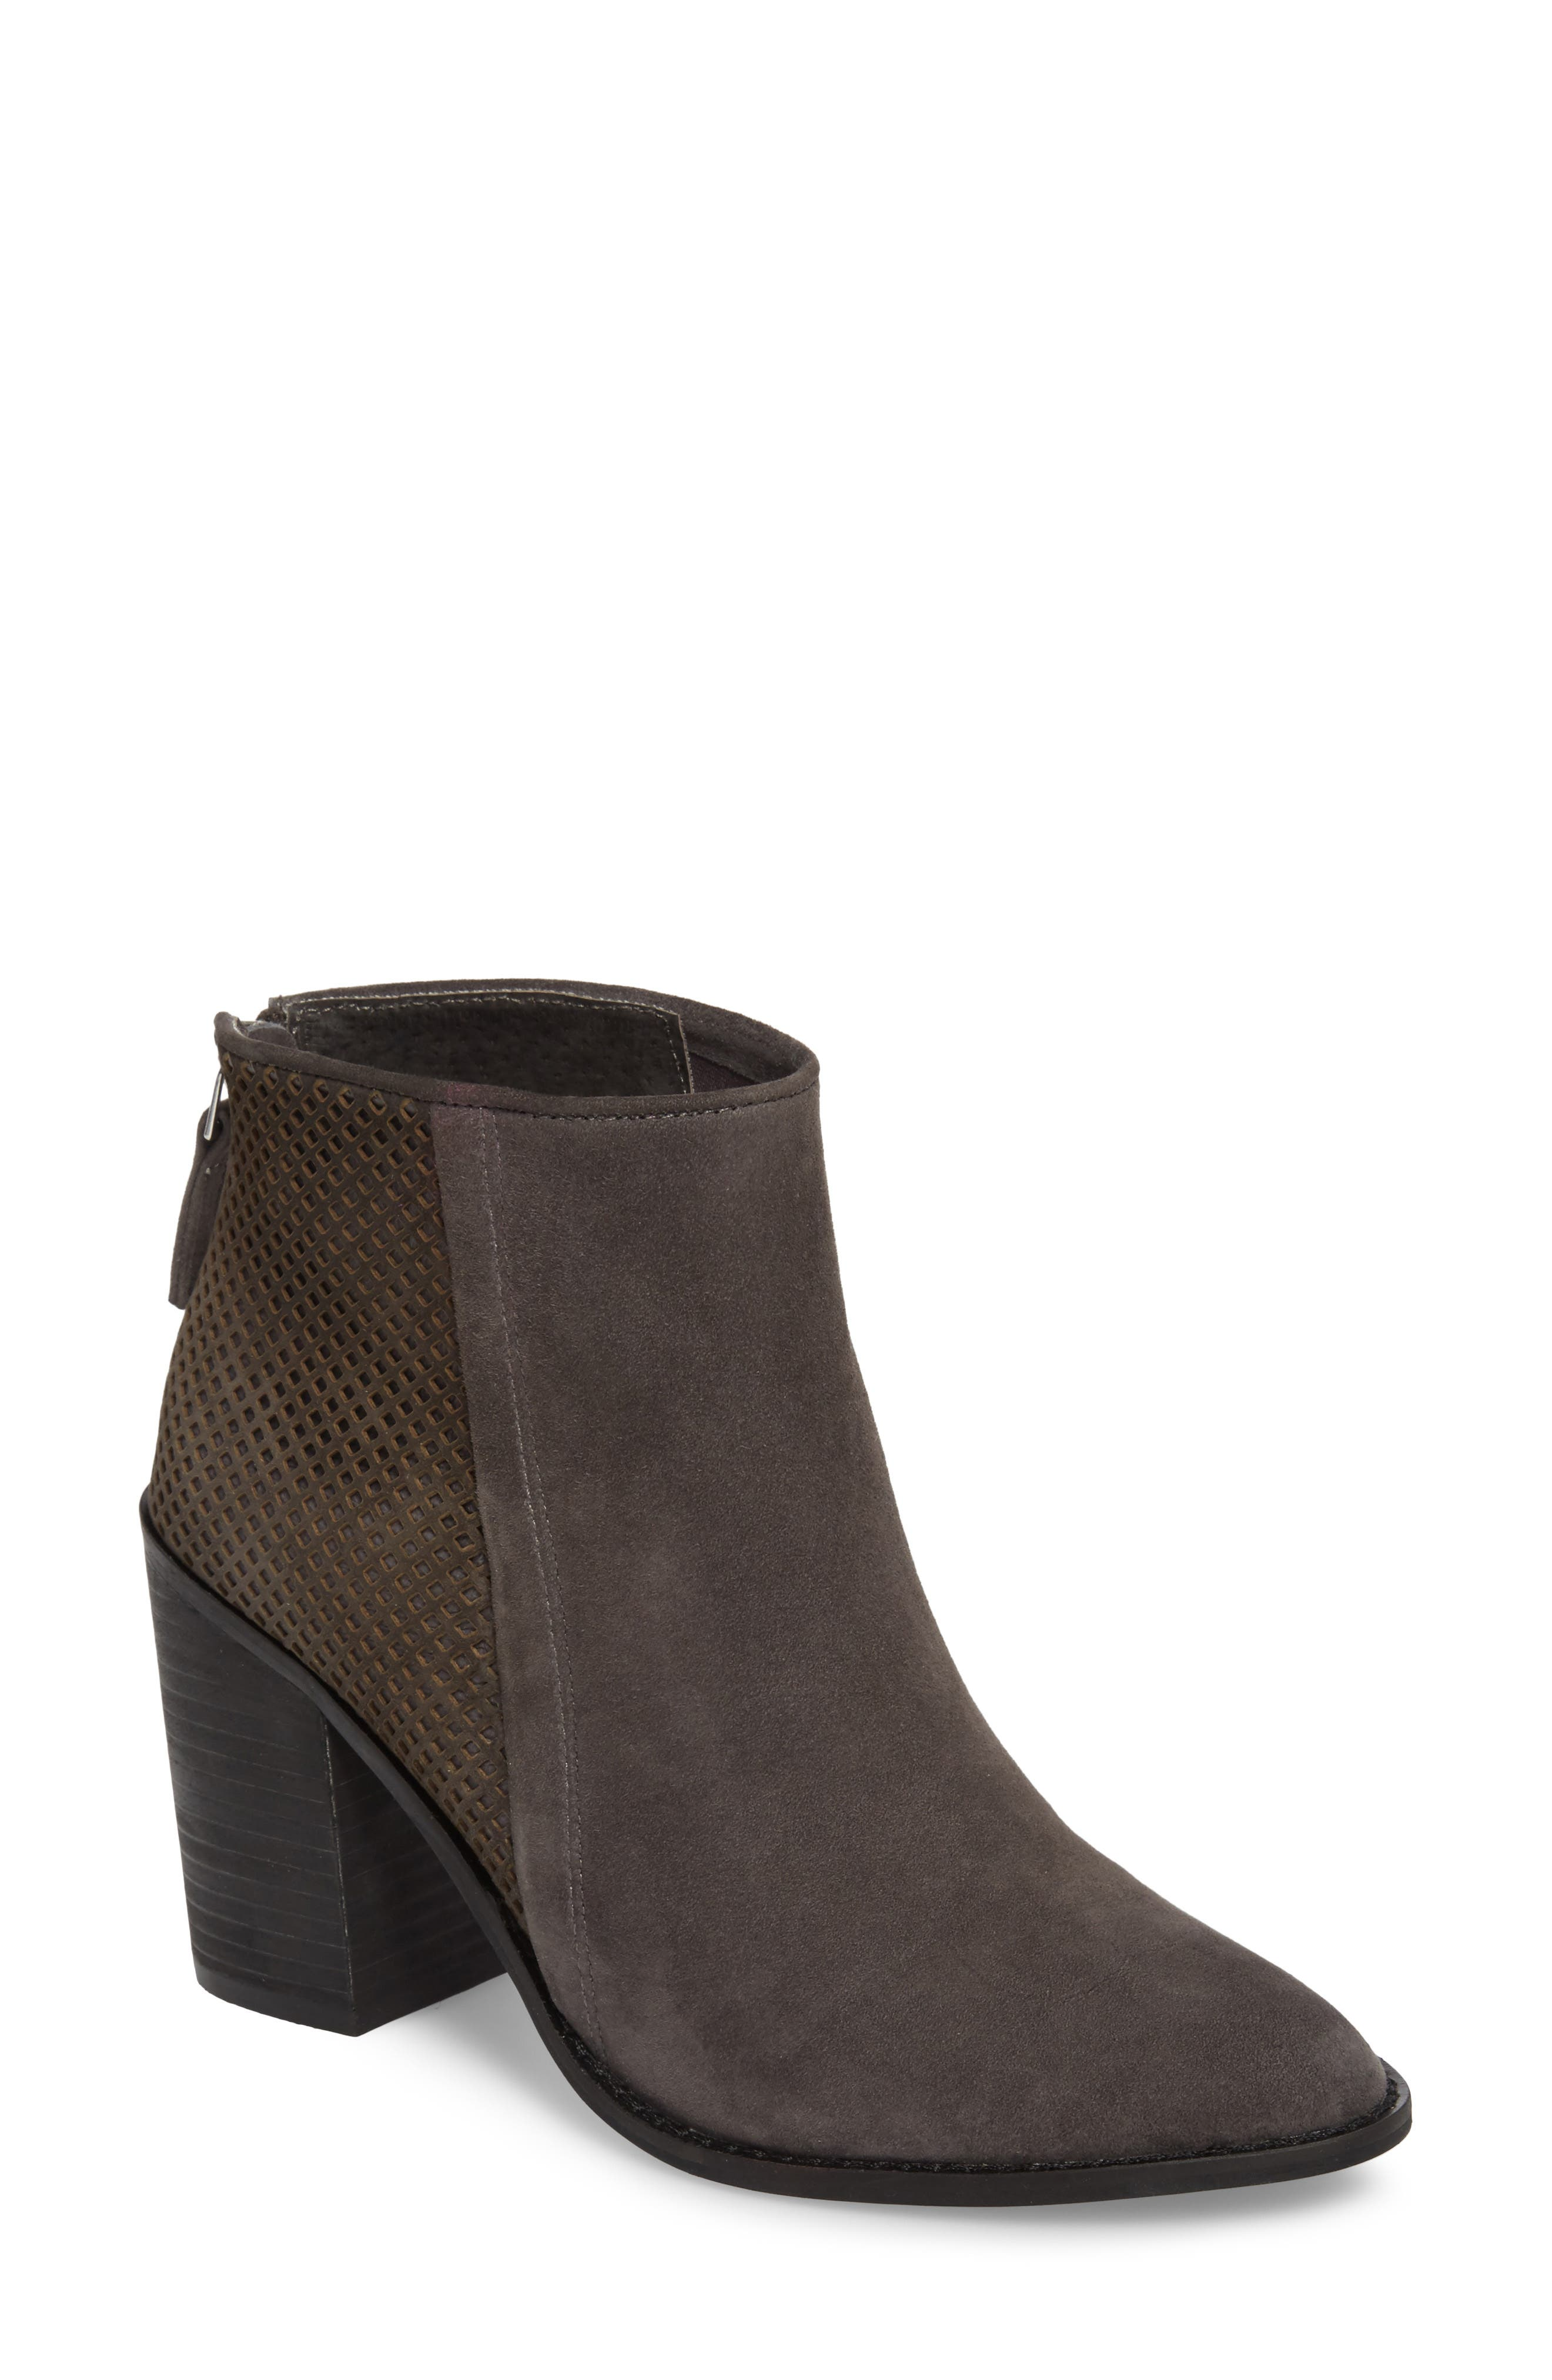 Replay Bootie,                         Main,                         color, 020